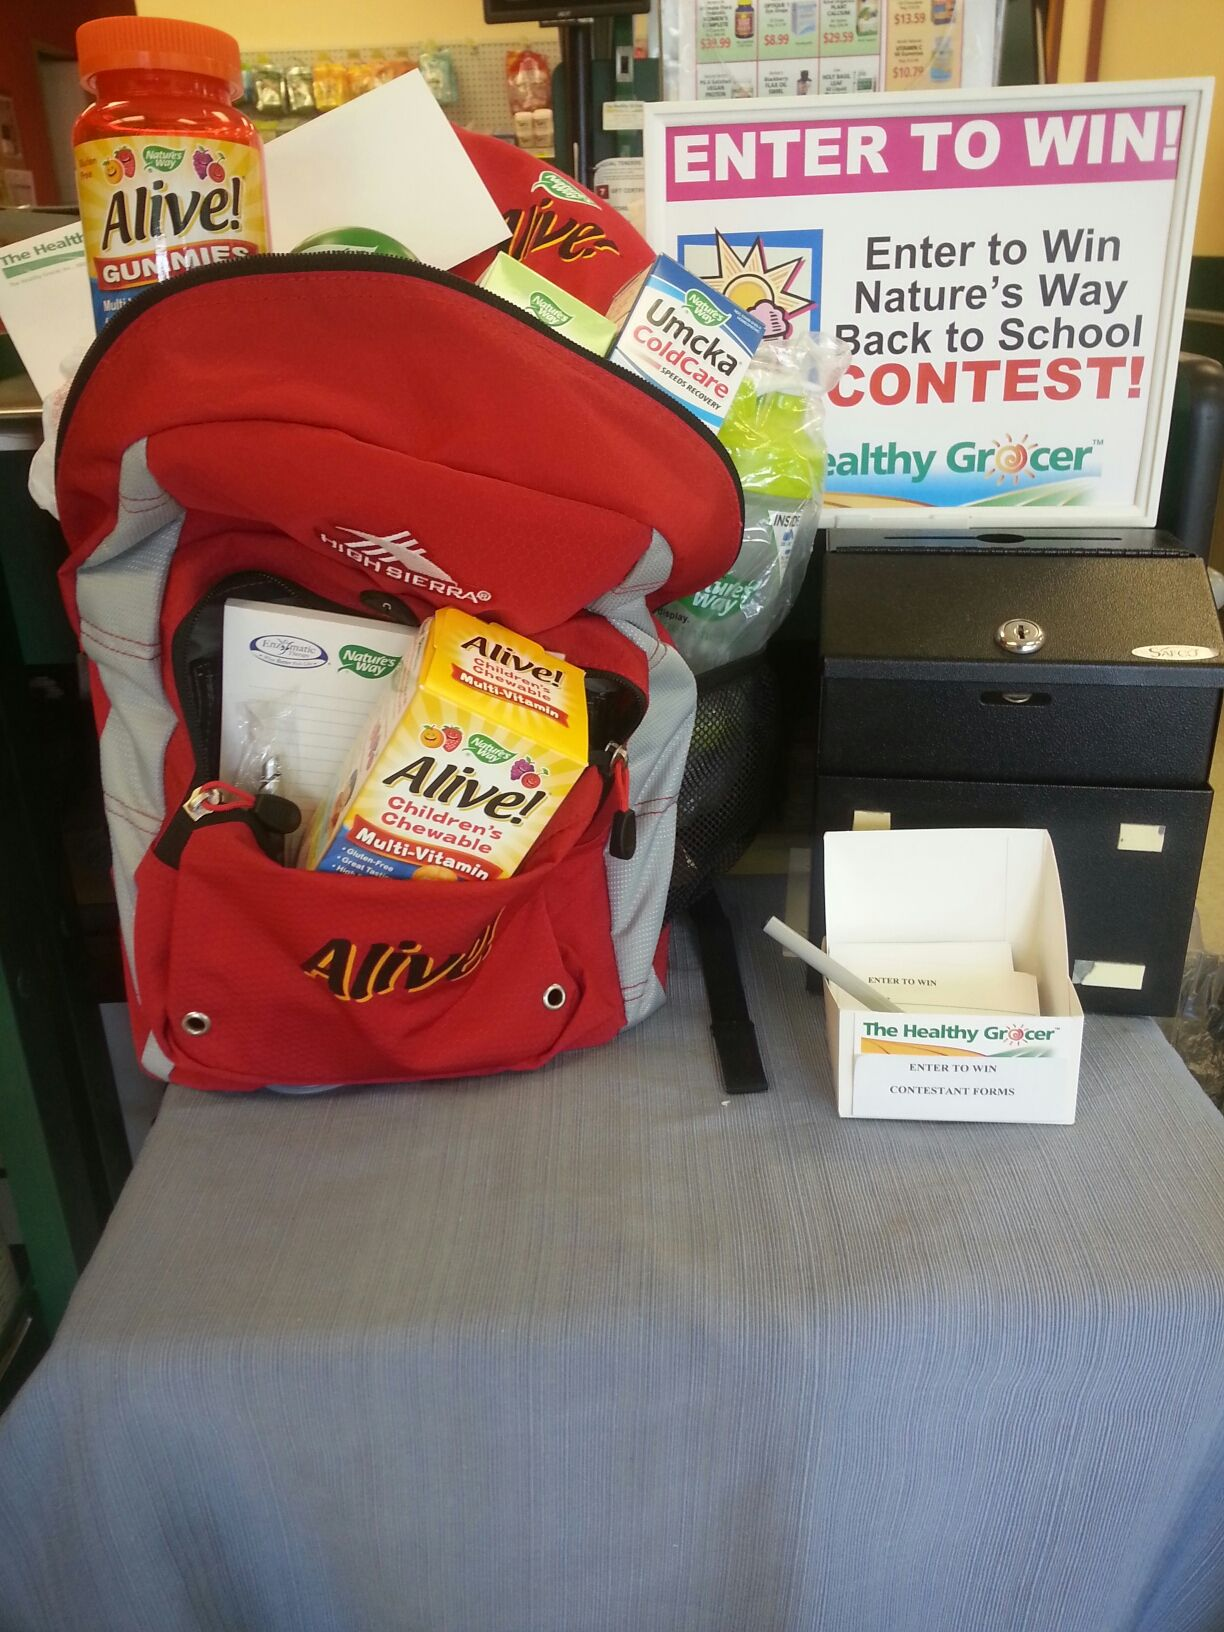 Back to School Nature's Way Contest. Enter today! Children's supplements and more! Contest ends August 20th, 2014 http://www.thehealthygrocer.com/kids/bts.html